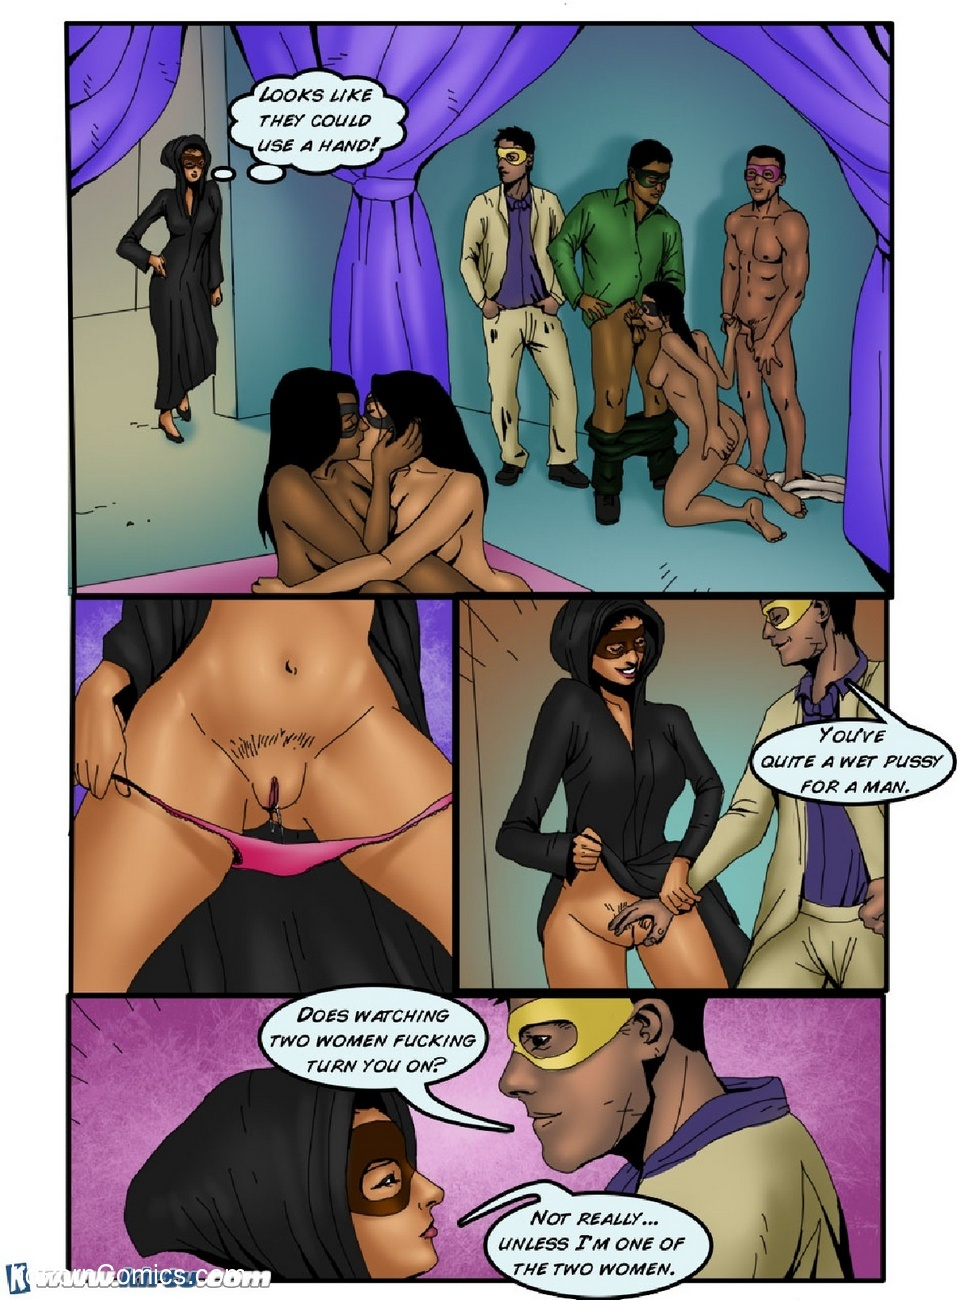 Saath-Kahaniya-10-The-Game18 free sex comic